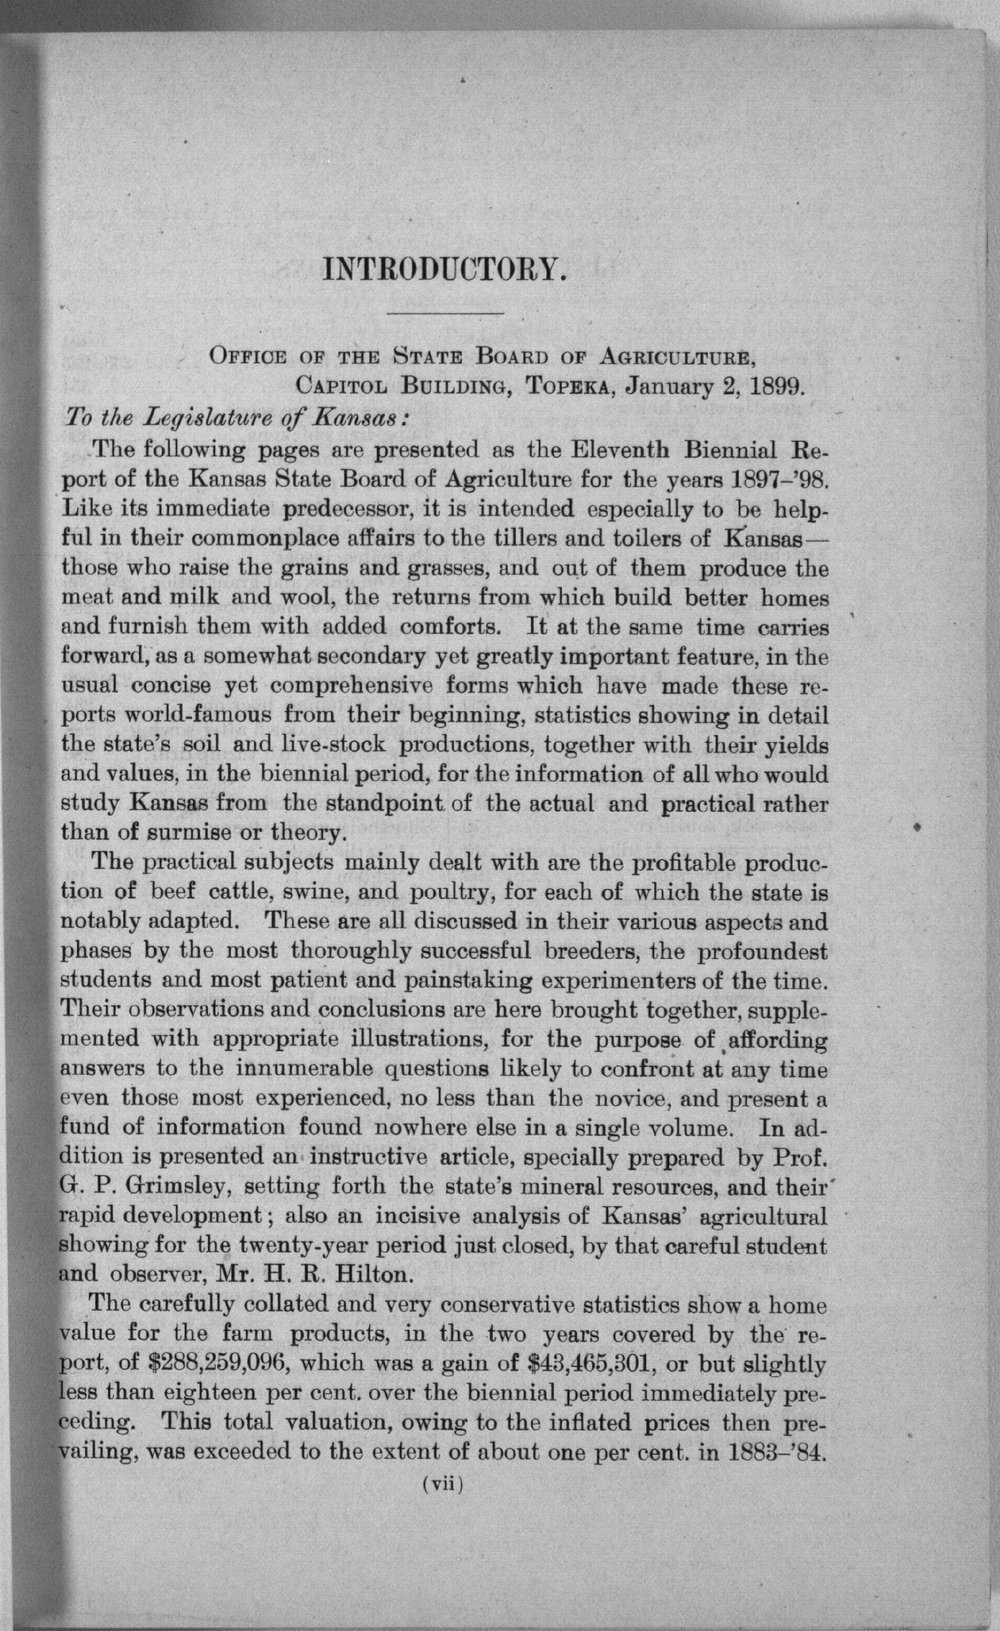 Eleventh biennial report of the Kansas State Board of Agriculture, 1897-98 - Introductory